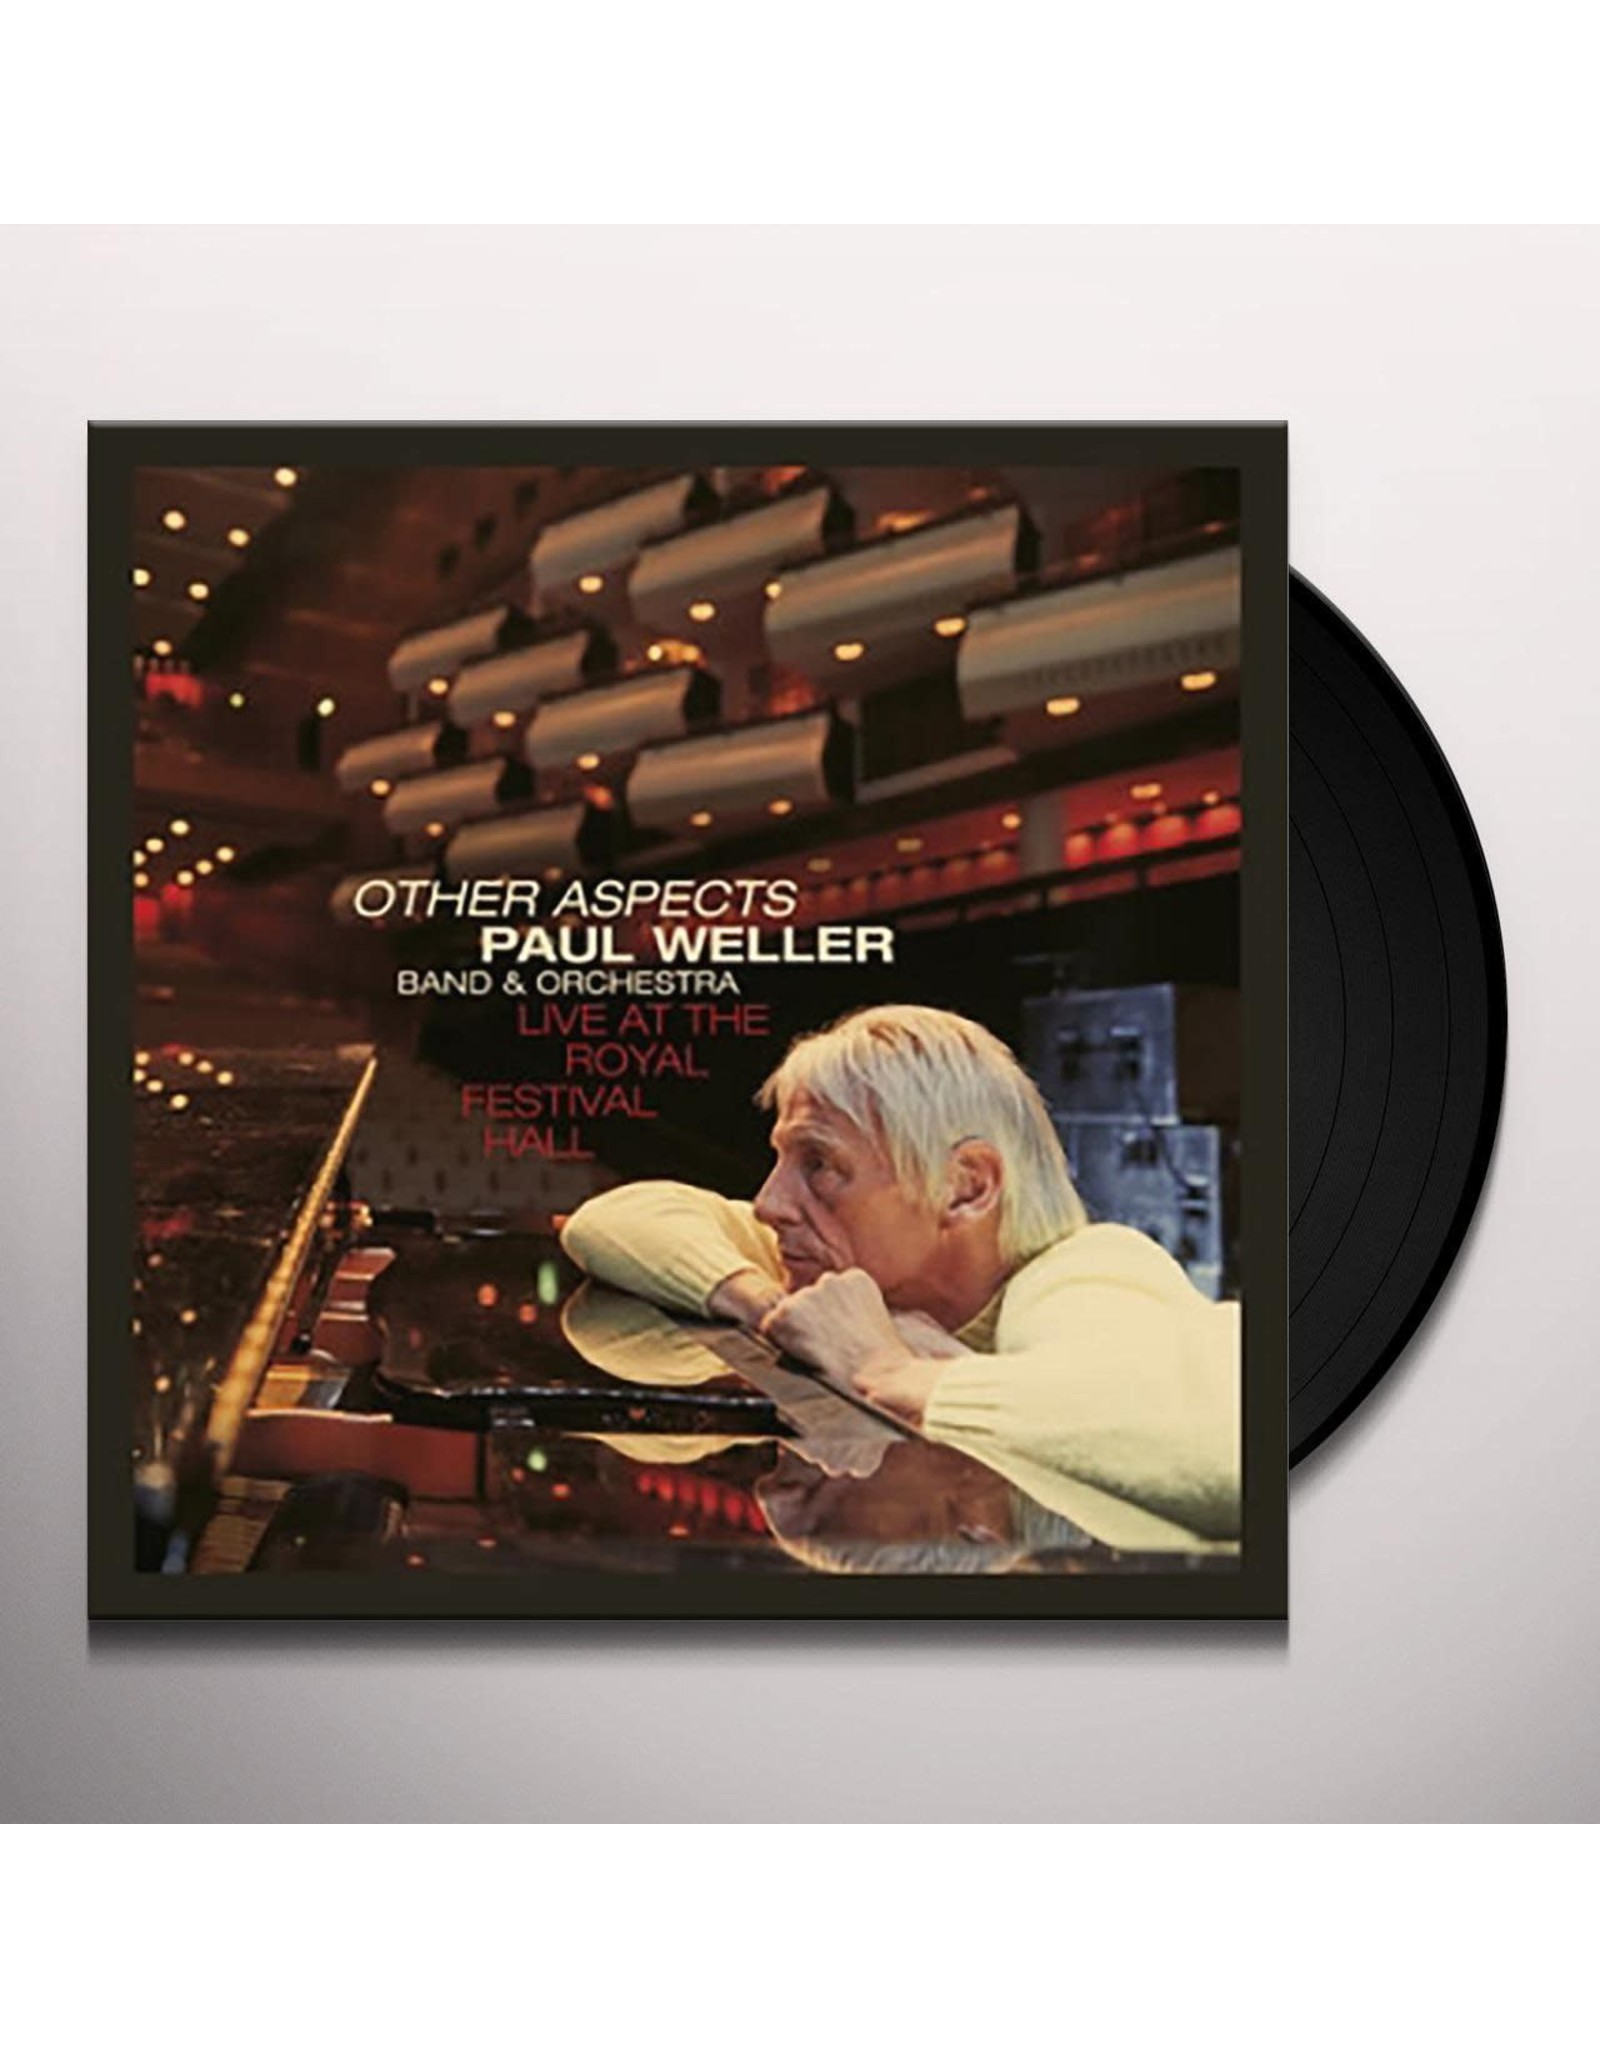 Weller, Paul - Other Aspects: Live at the Royal Festival Hall LP